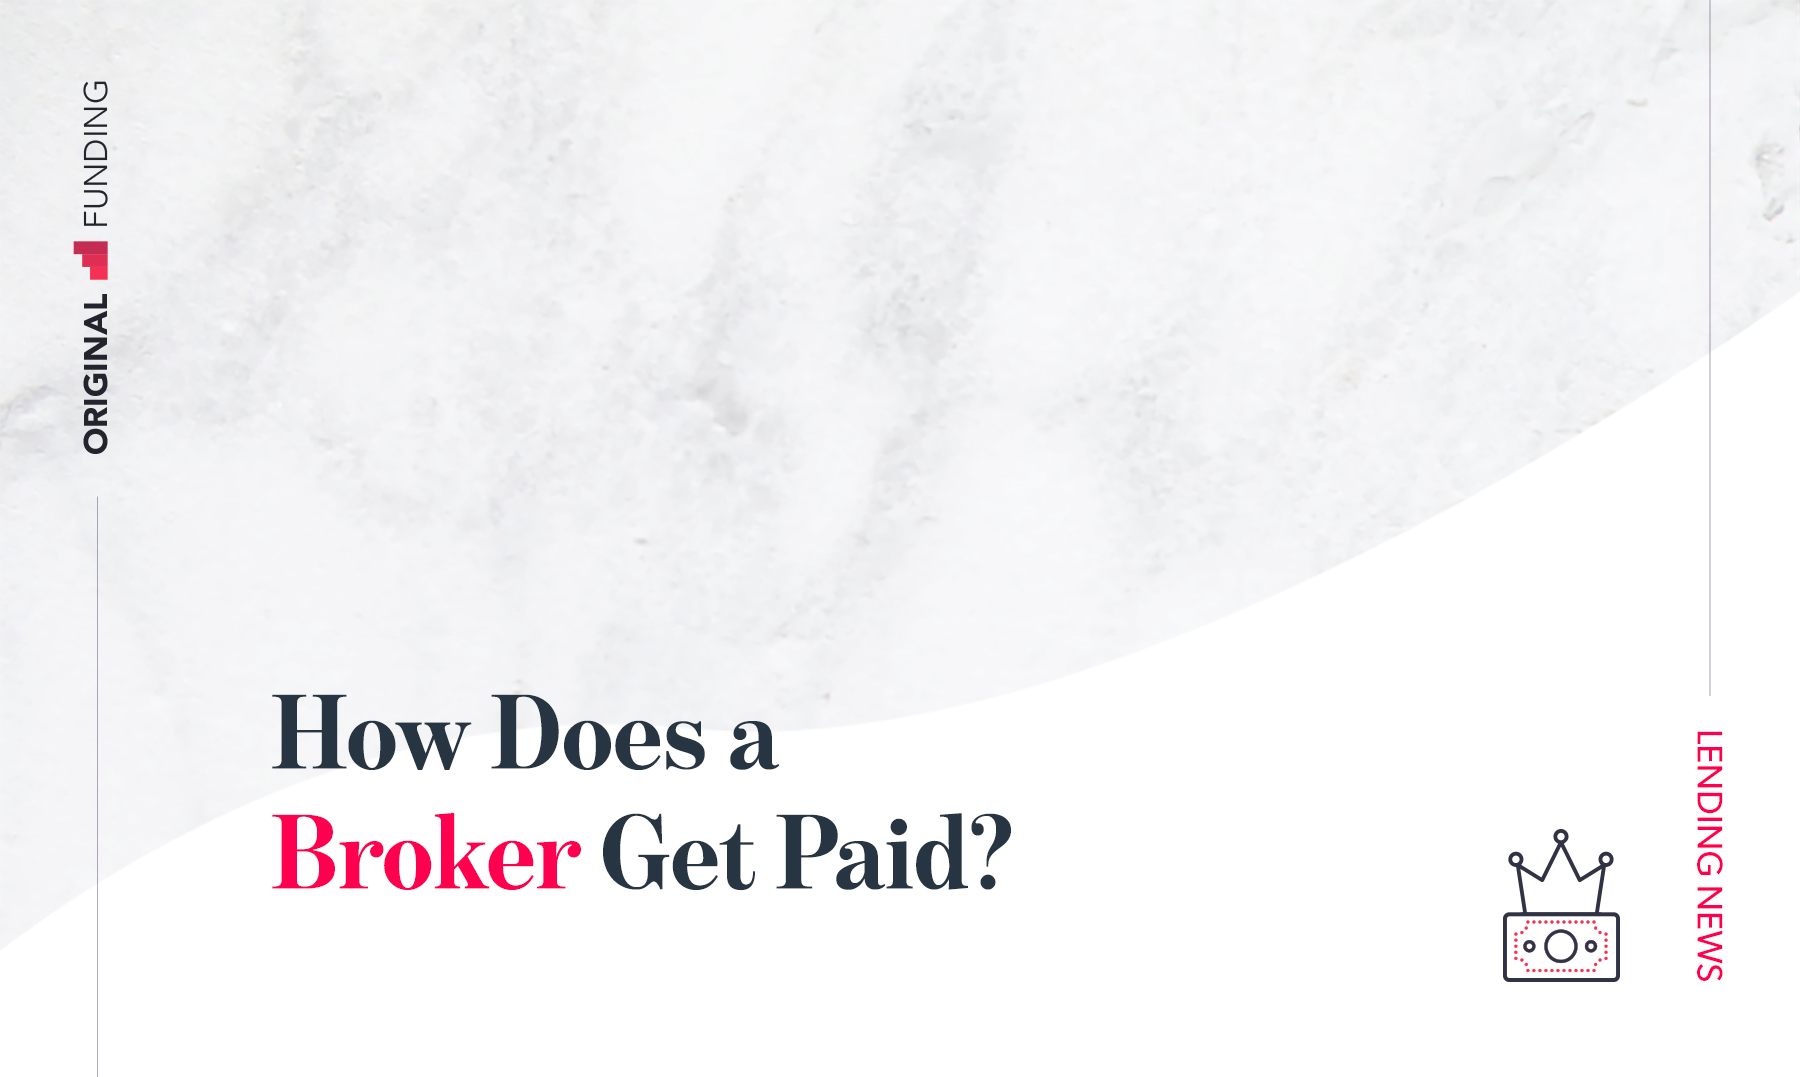 How Does a Broker Get Paid?